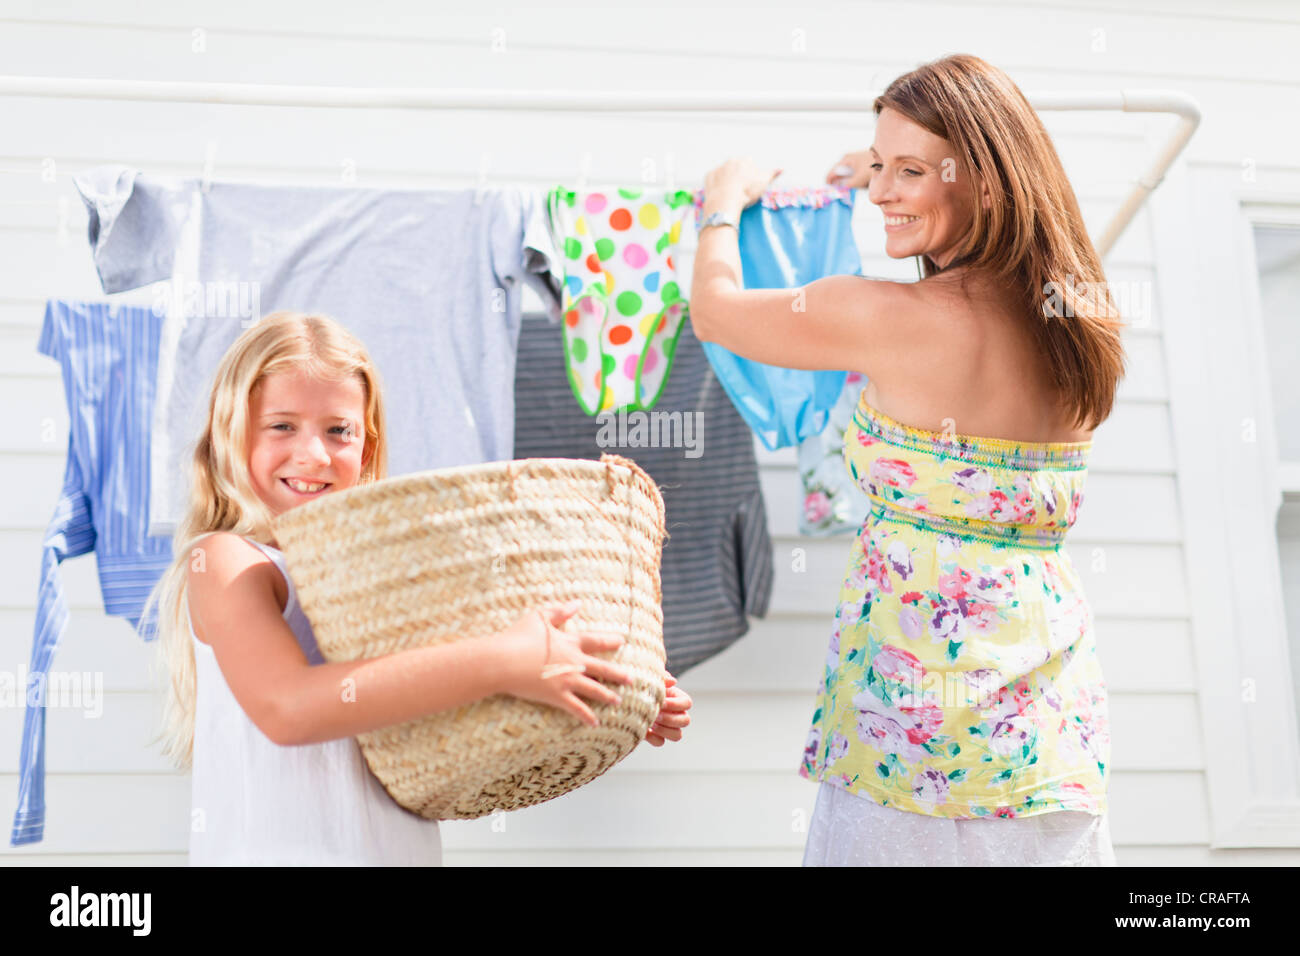 Girl helping mother hang laundry - Stock Image